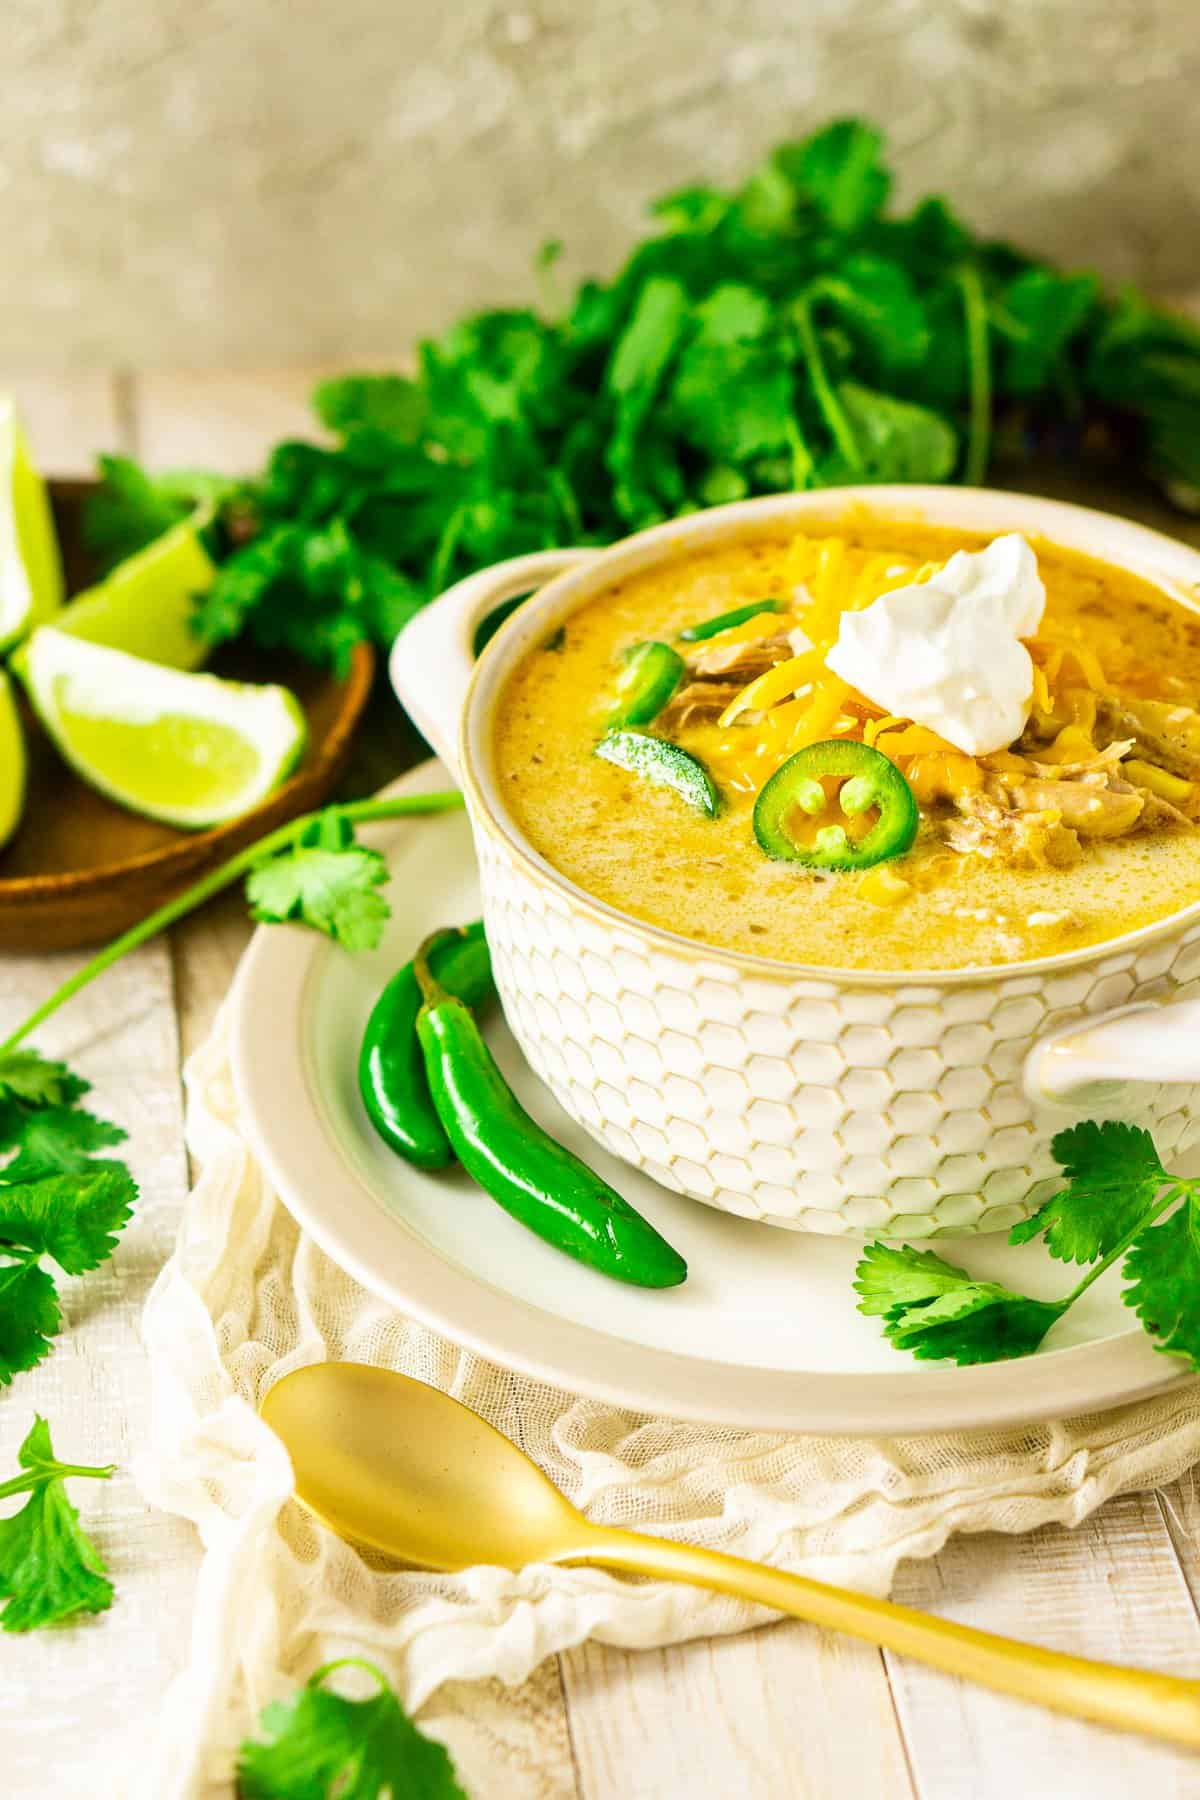 The creamy white chicken chili on a plate with jalapenos and cilantro in the background.